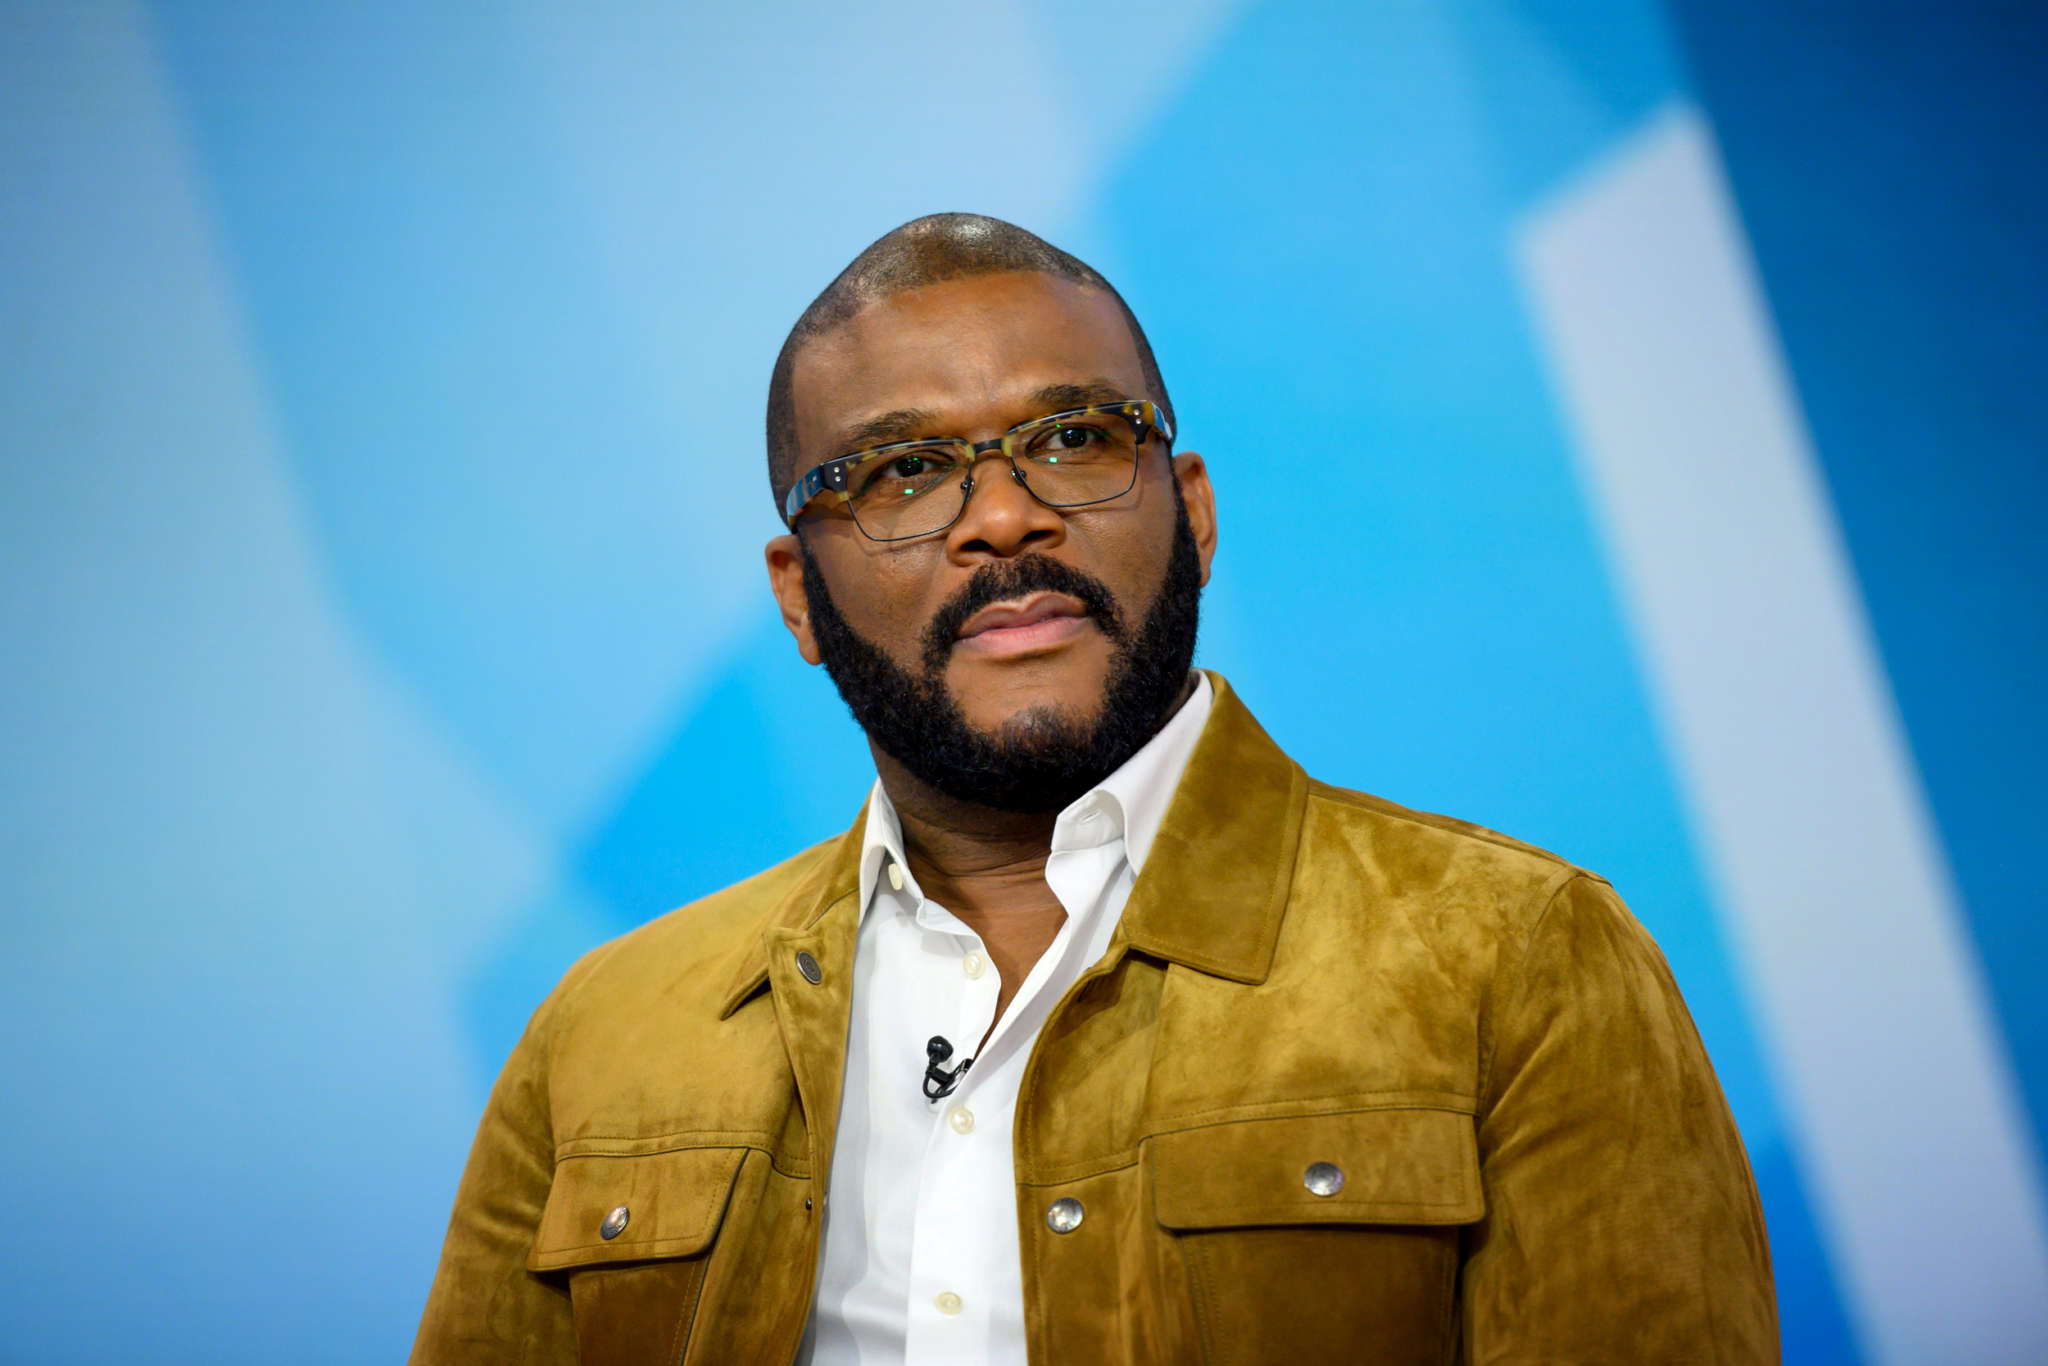 Tyler Perry Is Helping Feed 5,000 Families During Food Giveaway Event